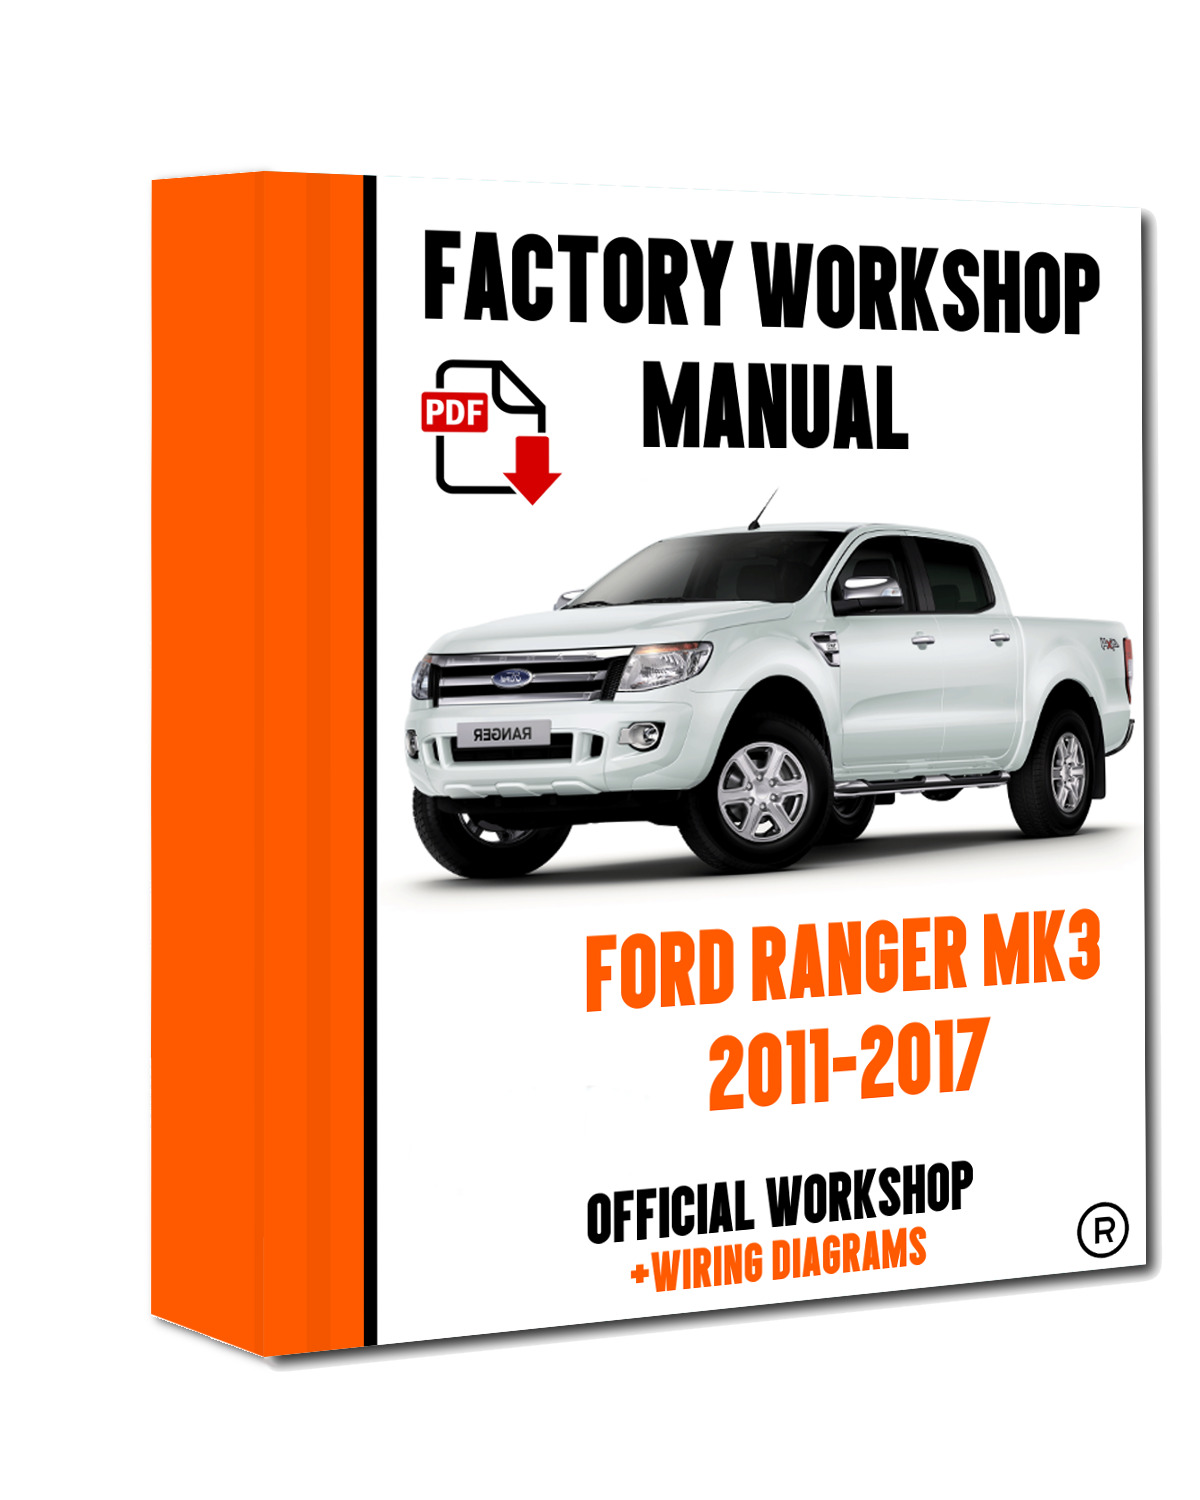 OFFICIAL WORKSHOP Manual Service Repair Ford Ranger 2011 - 2015 1 of 6FREE  Shipping ...